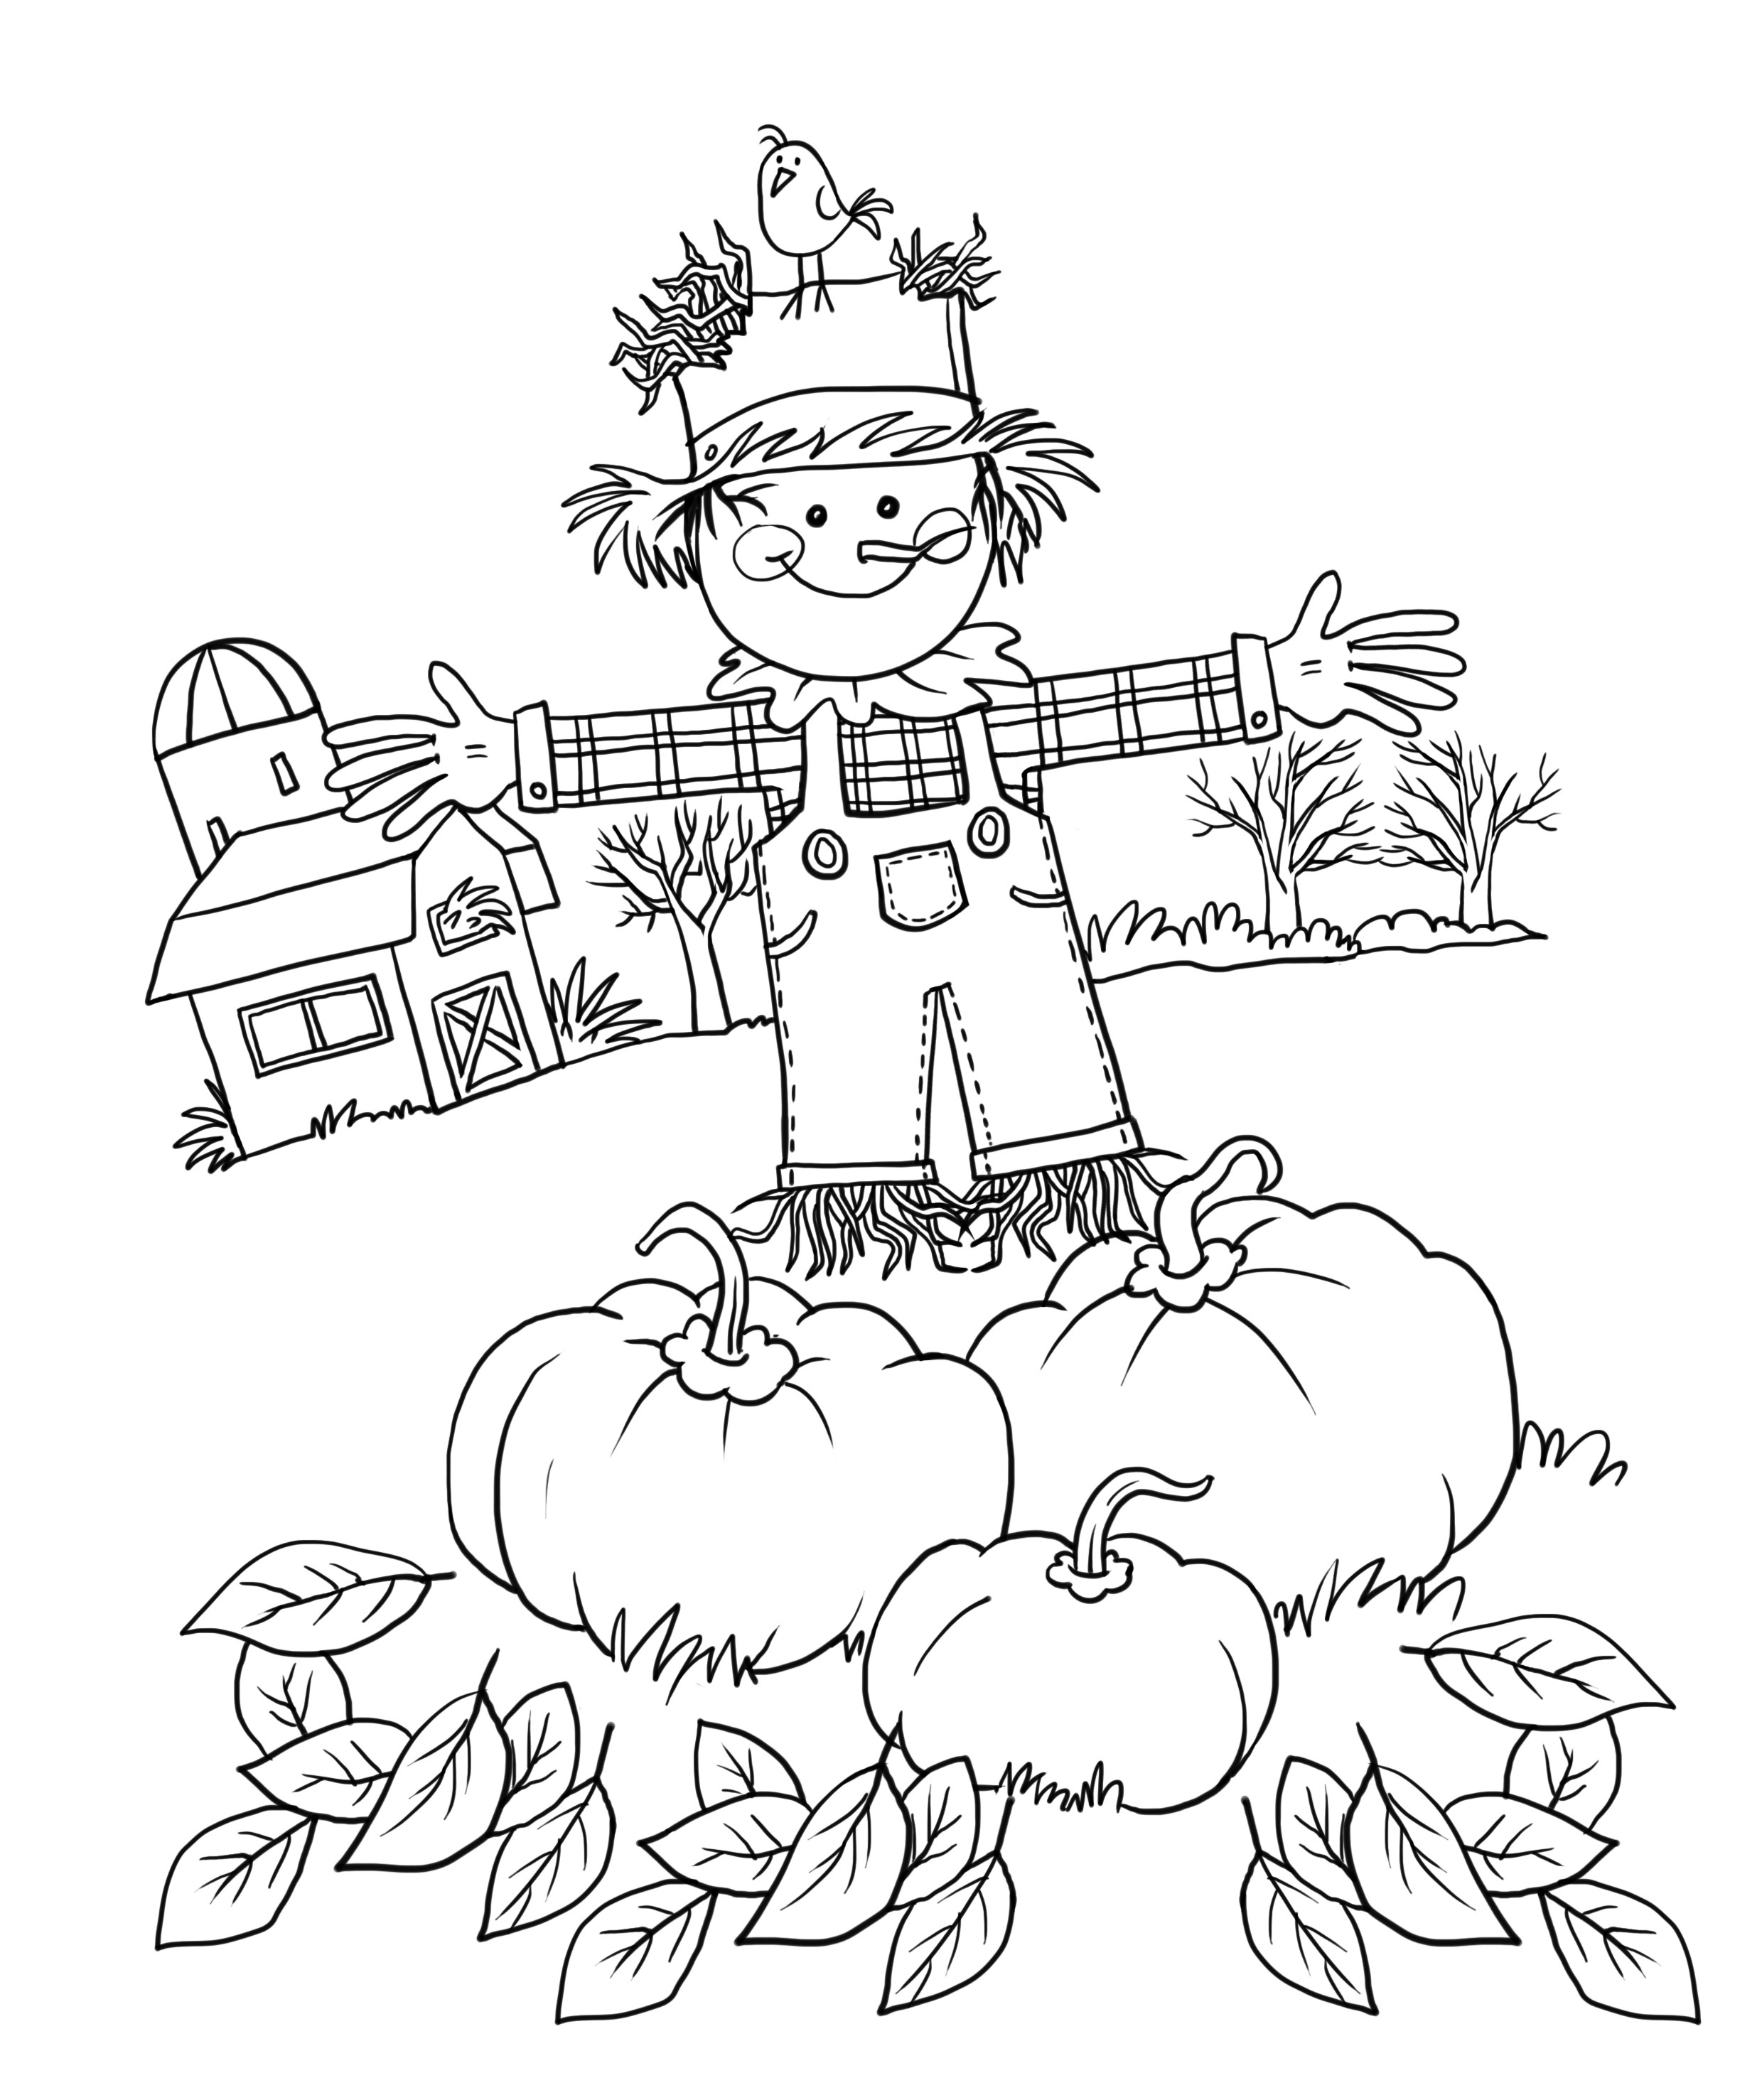 Autumn Coloring Pages For Adults  Fall Coloring Pages